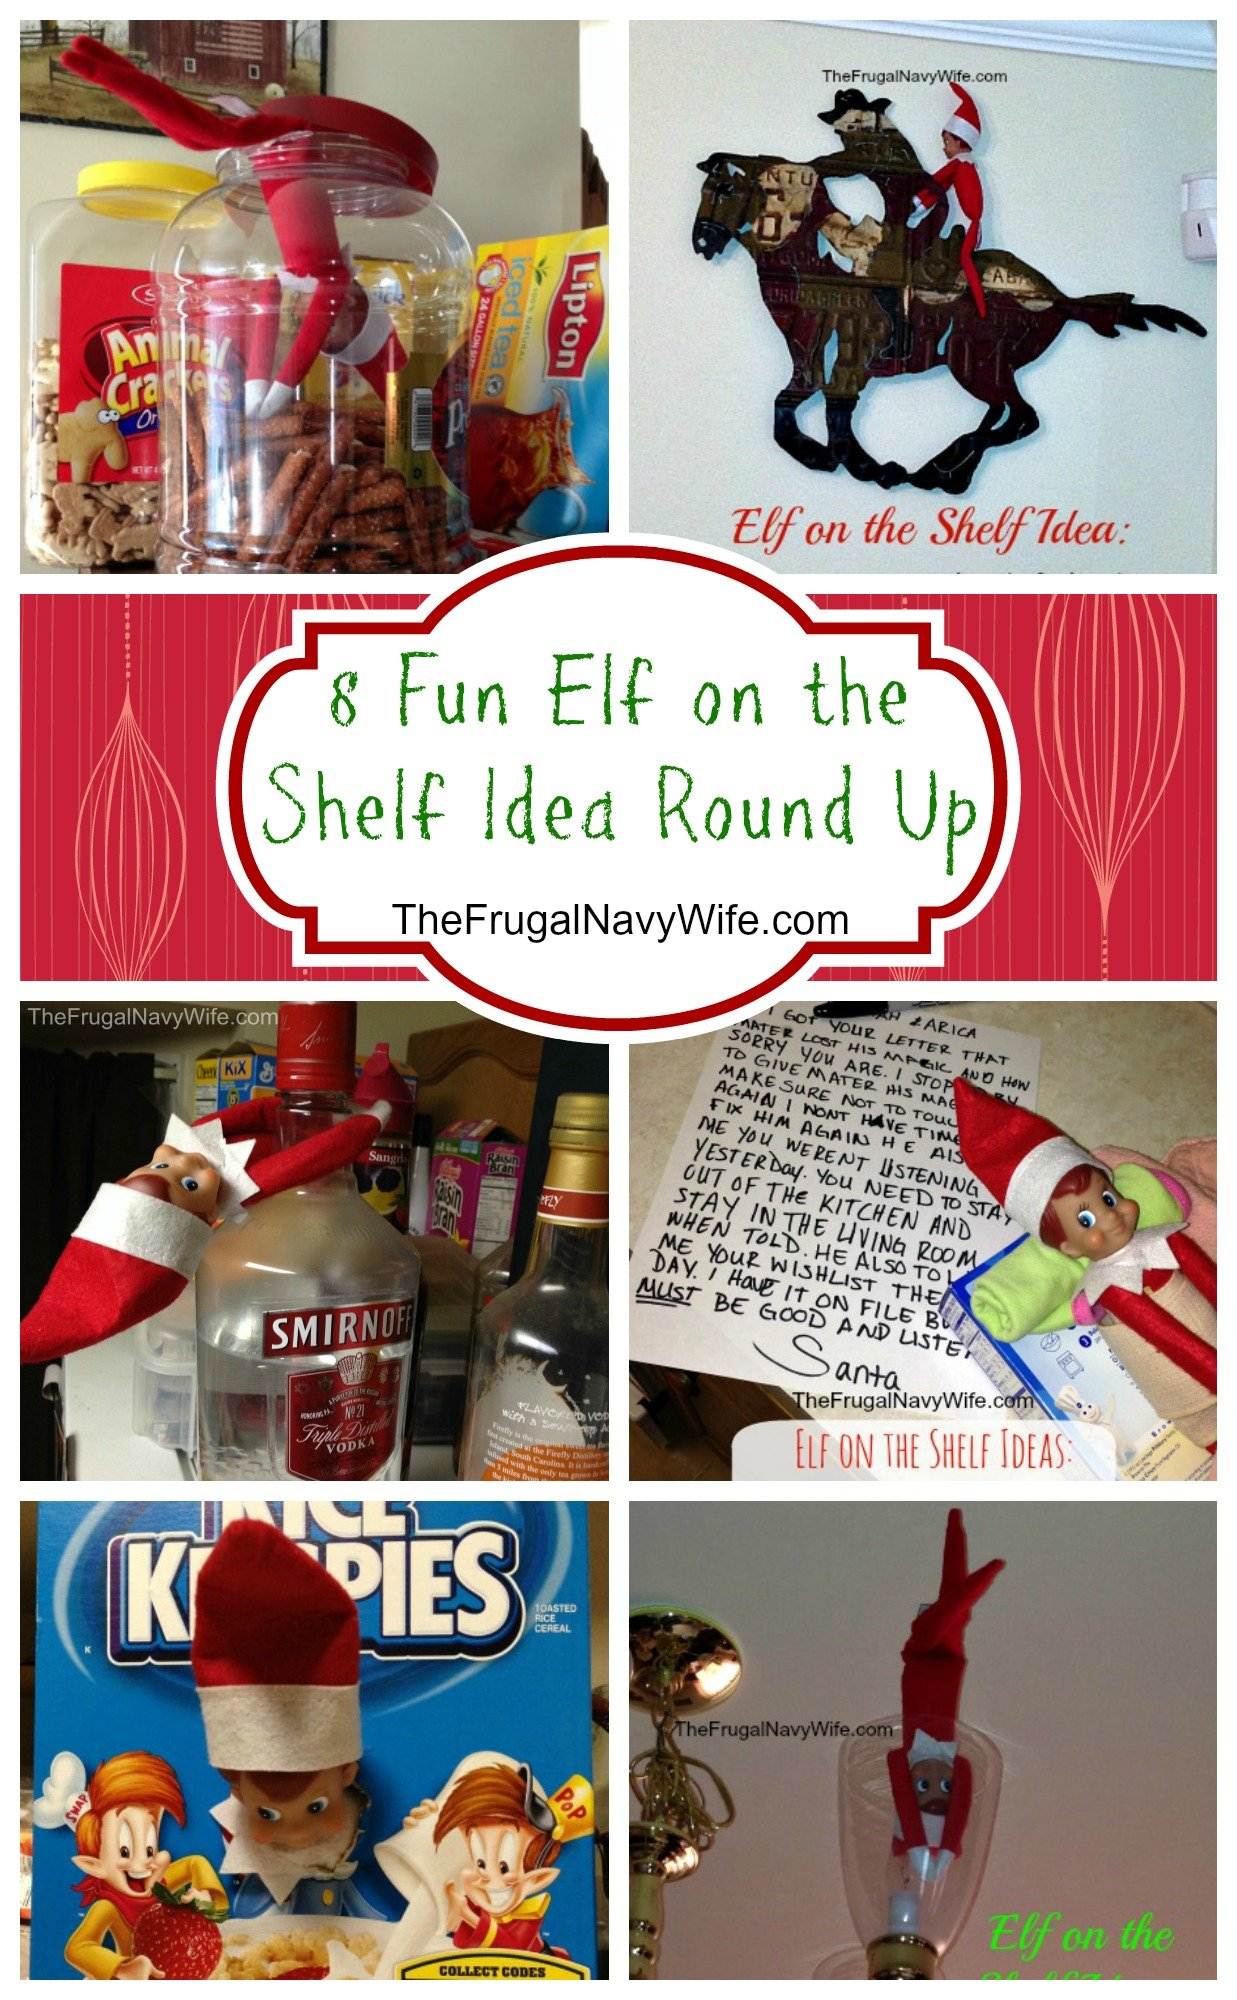 8fun elf round up